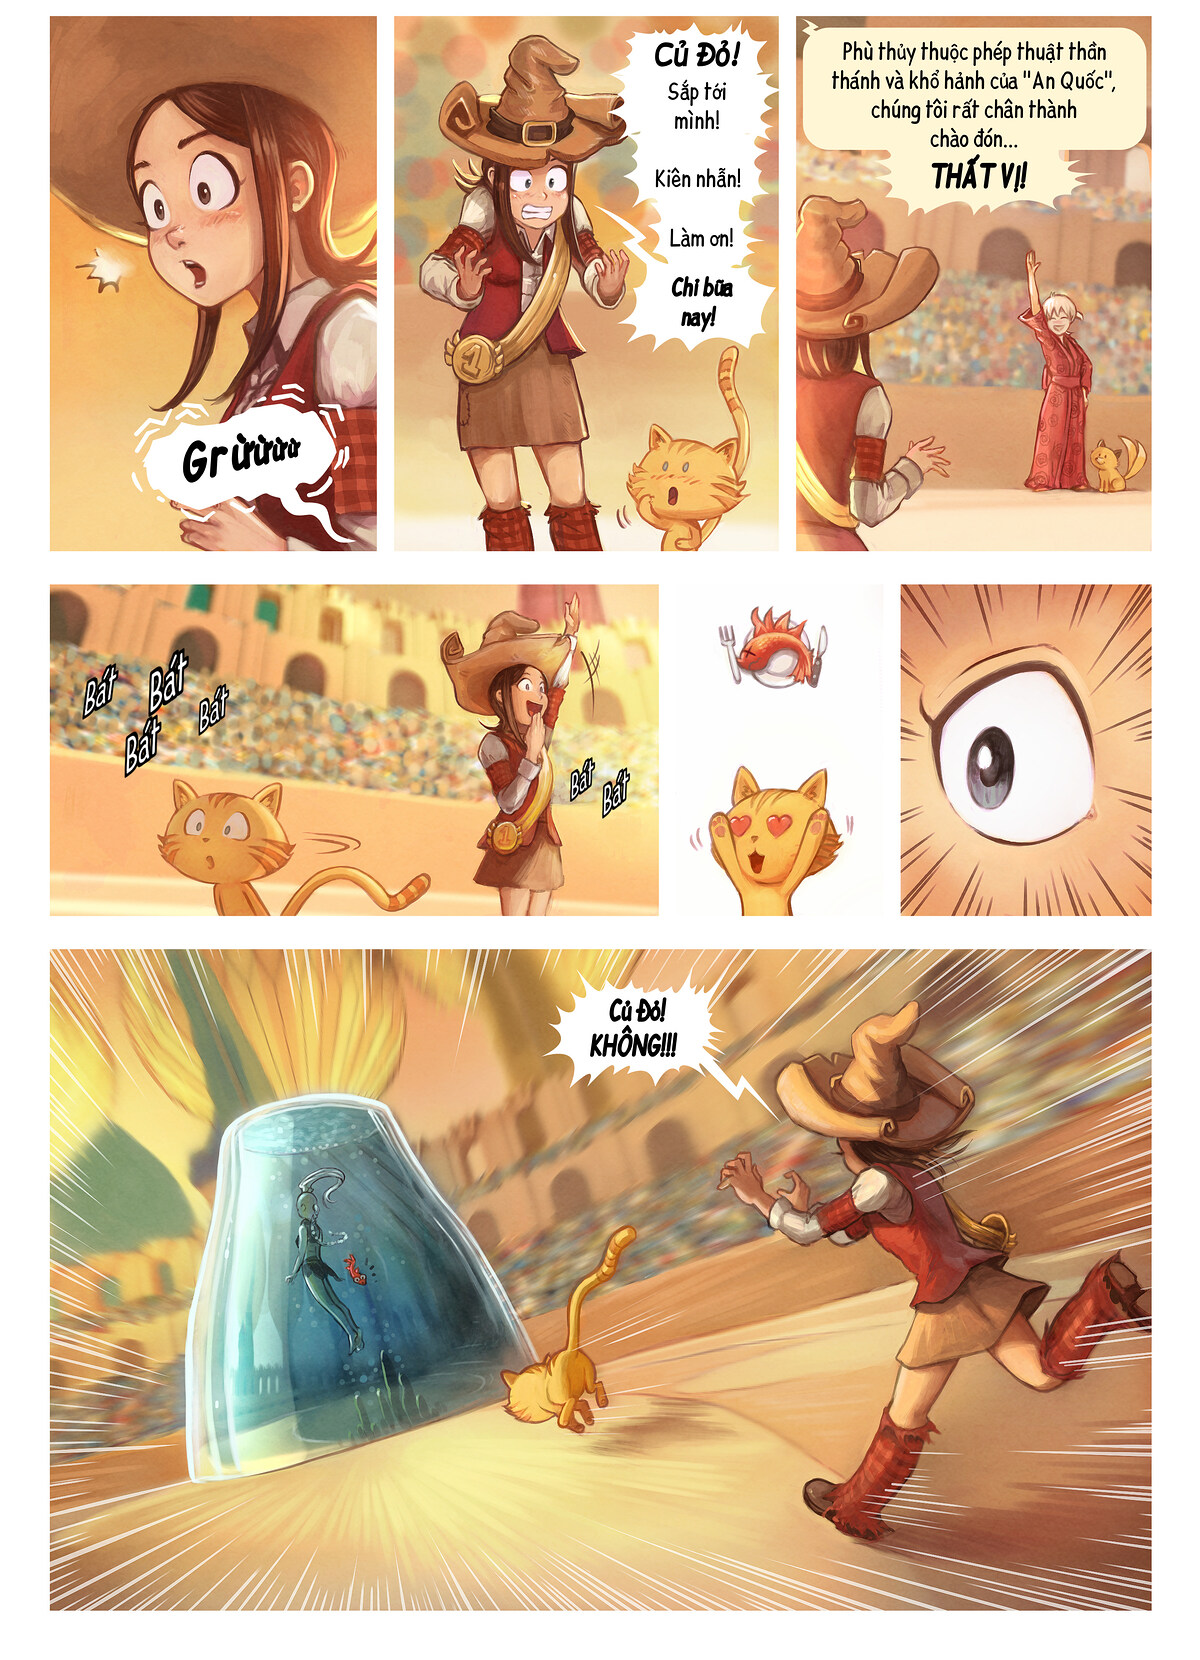 A webcomic page of Pepper&Carrot, Tập 21 [vi], trang 5